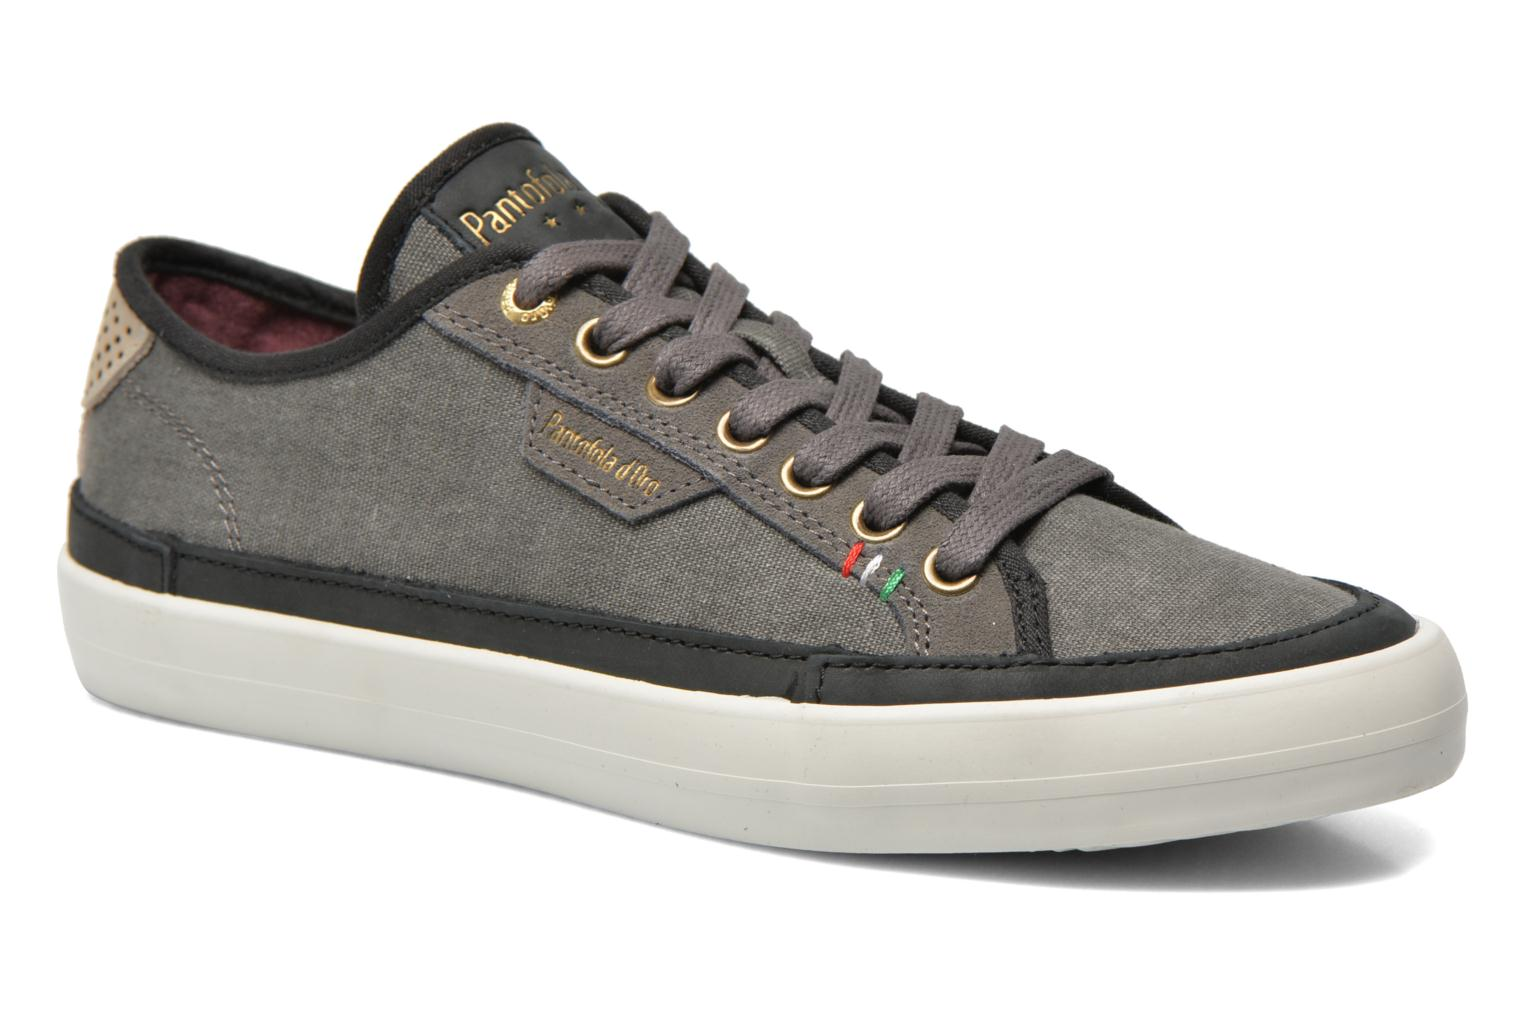 Baskets Pantofola d'Oro Veneto Canvas Low Gris vue détail/paire